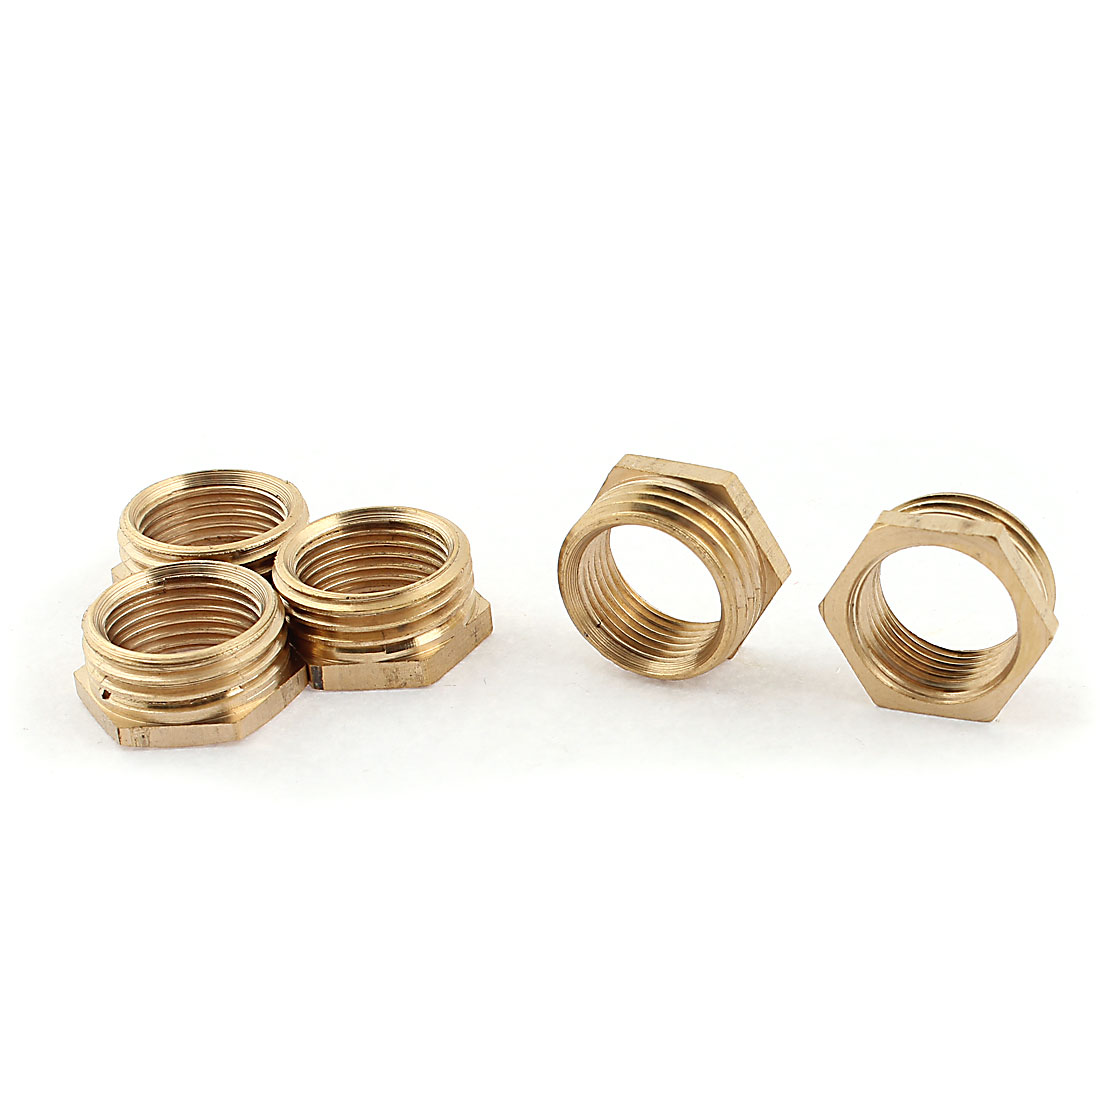 1/2BSP Male x 3/8BSP Female Thread Hex Bushing Reducer Pipe Fitting Gold Tone 5pcs